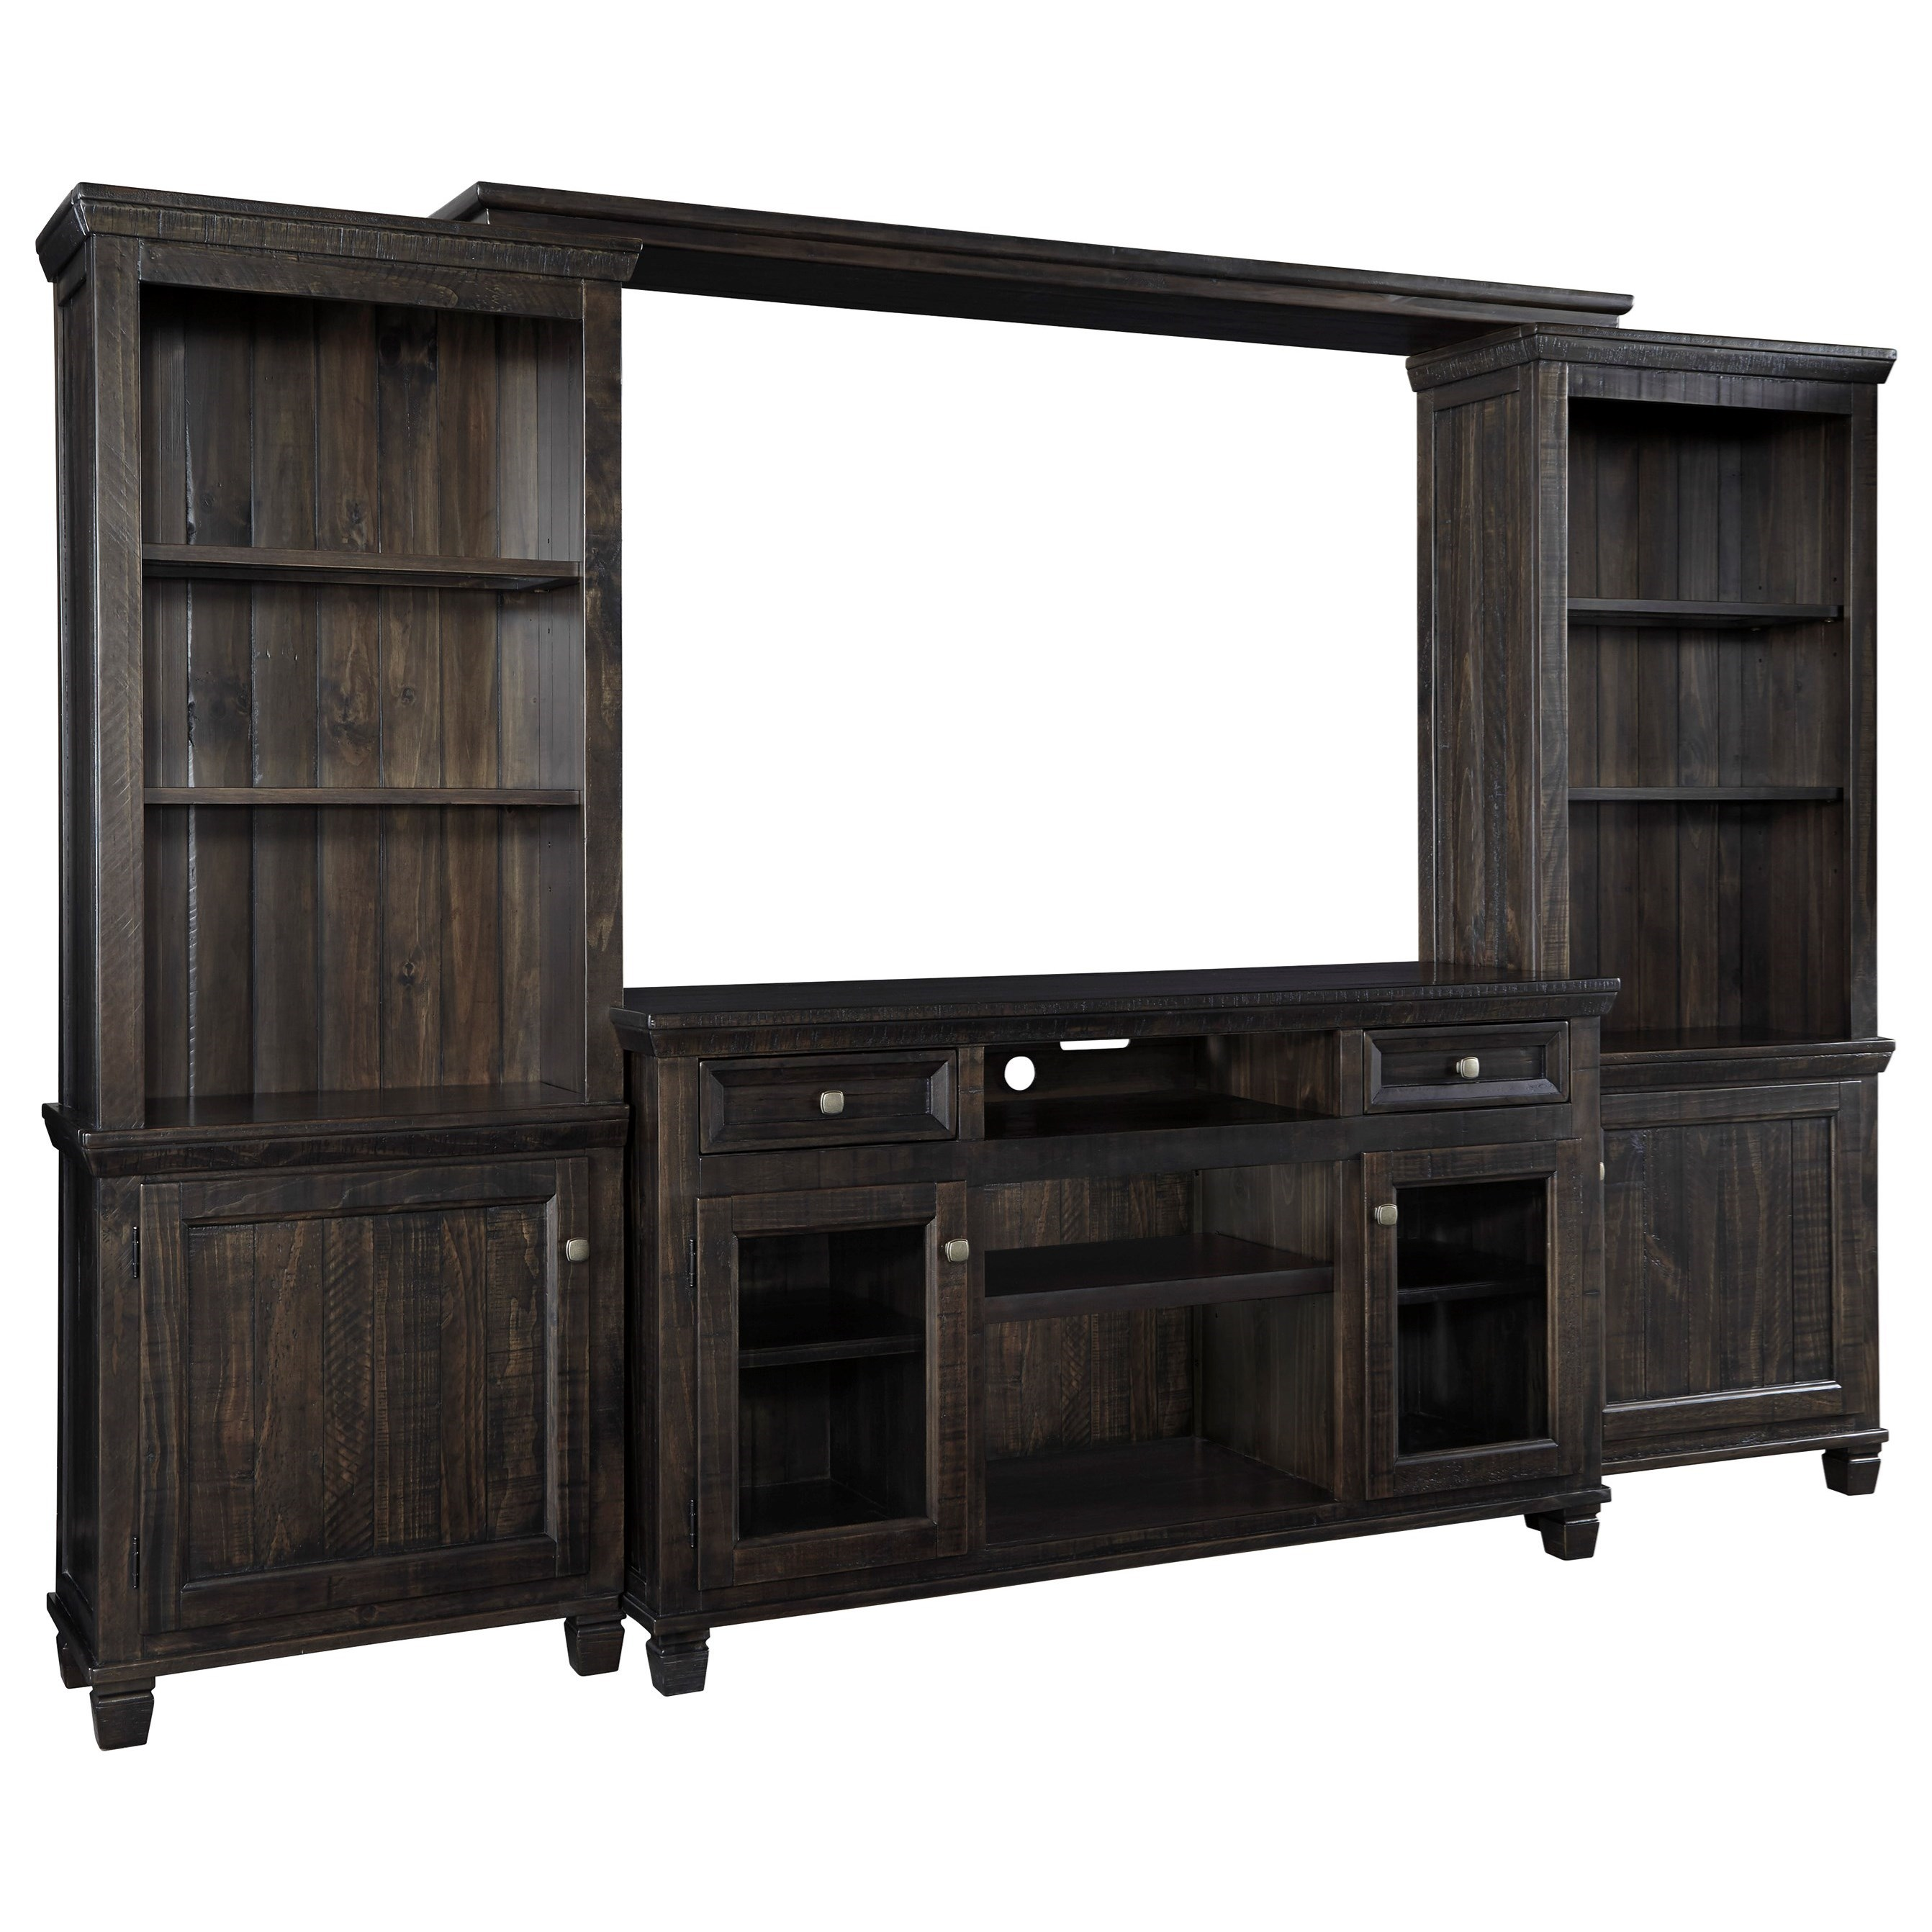 Signature Design by Ashley Townser Entertainment Center - Item Number: W636-33+30+35+34